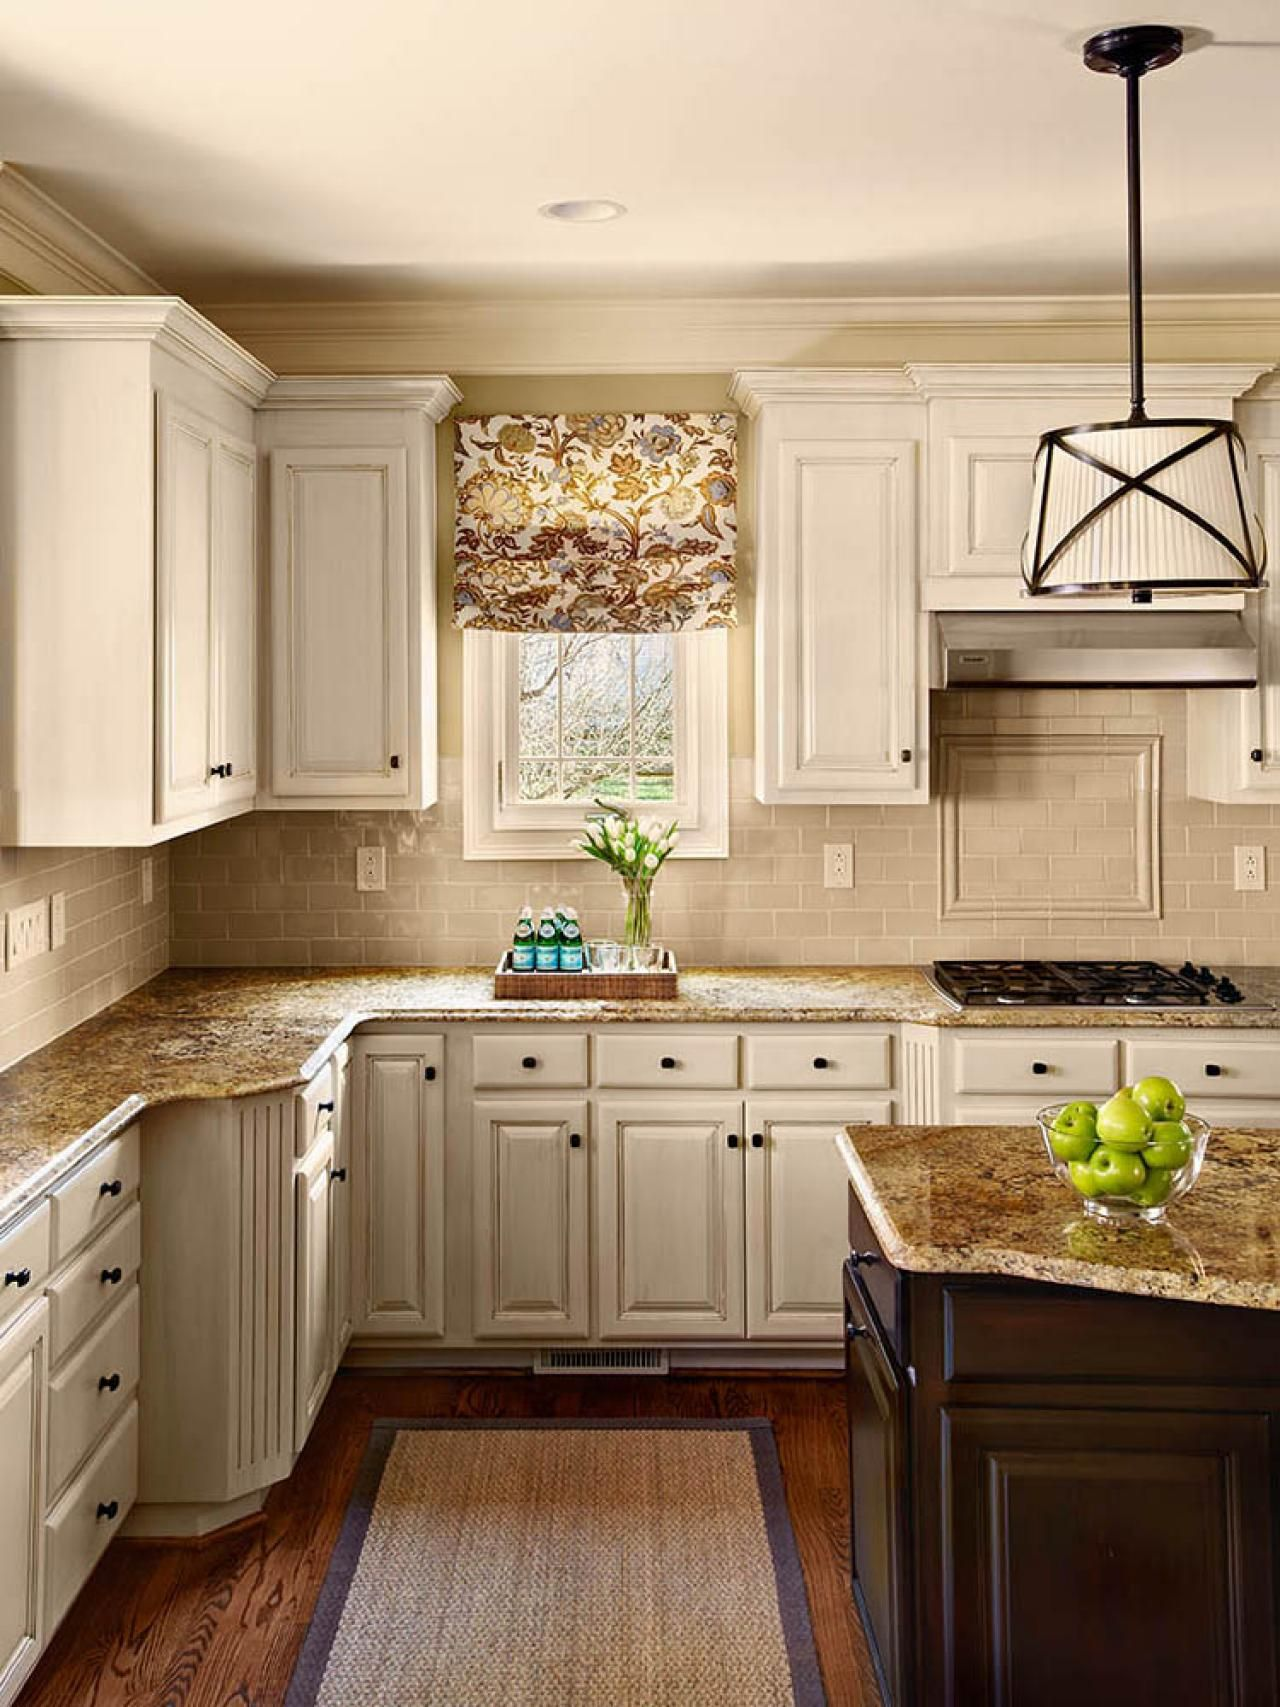 Pictures Of Kitchen Cabinets Ideas Inspiration From Hgtv